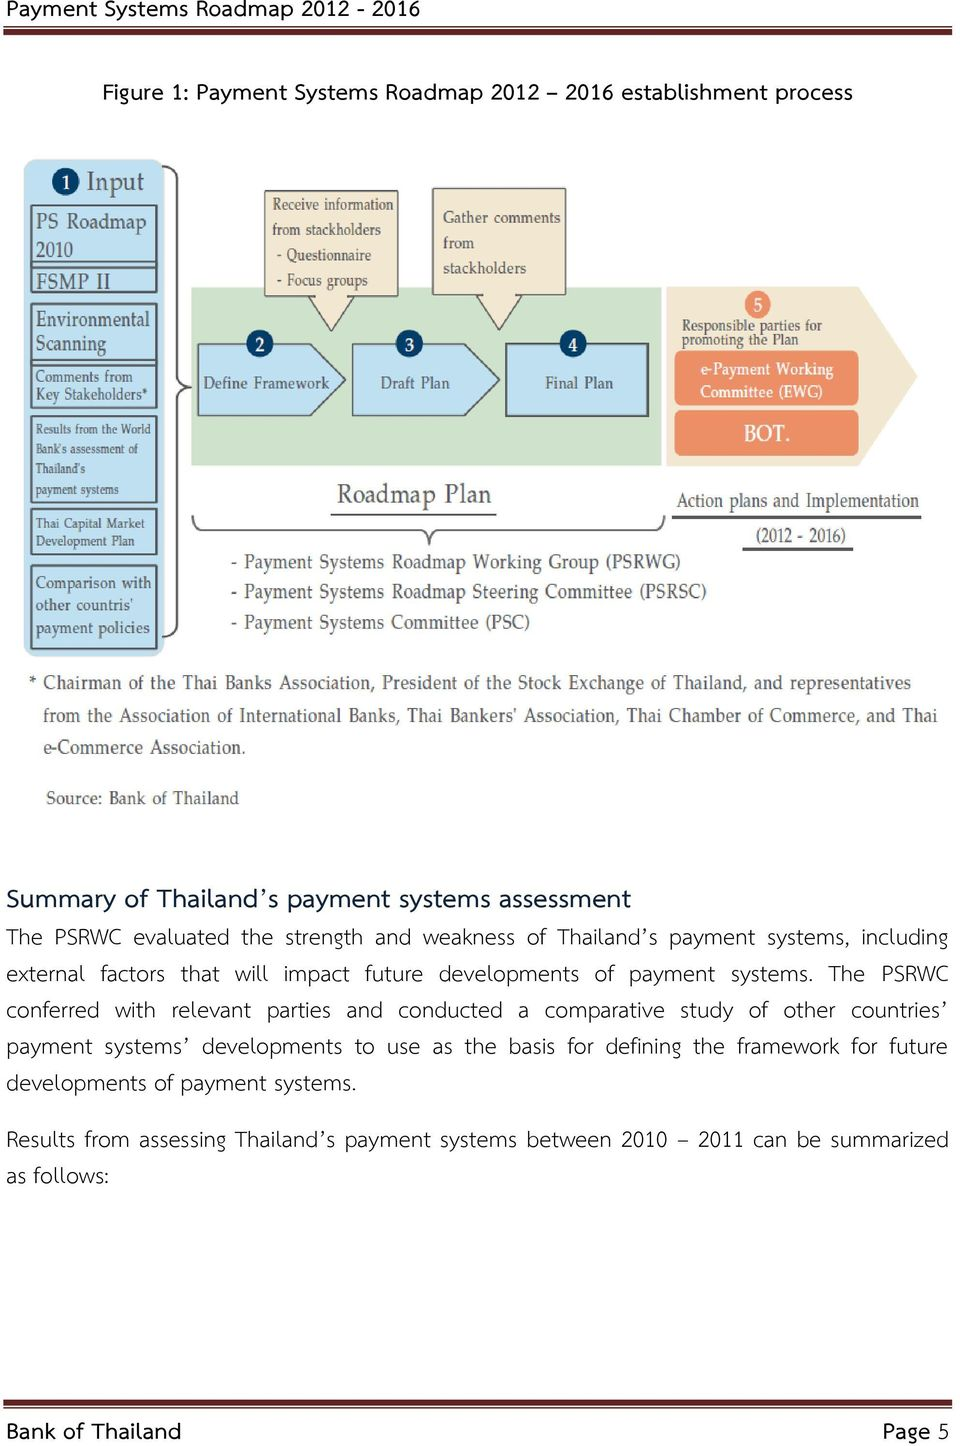 The PSRWC conferred with relevant parties and conducted a comparative study of other countries payment systems developments to use as the basis for